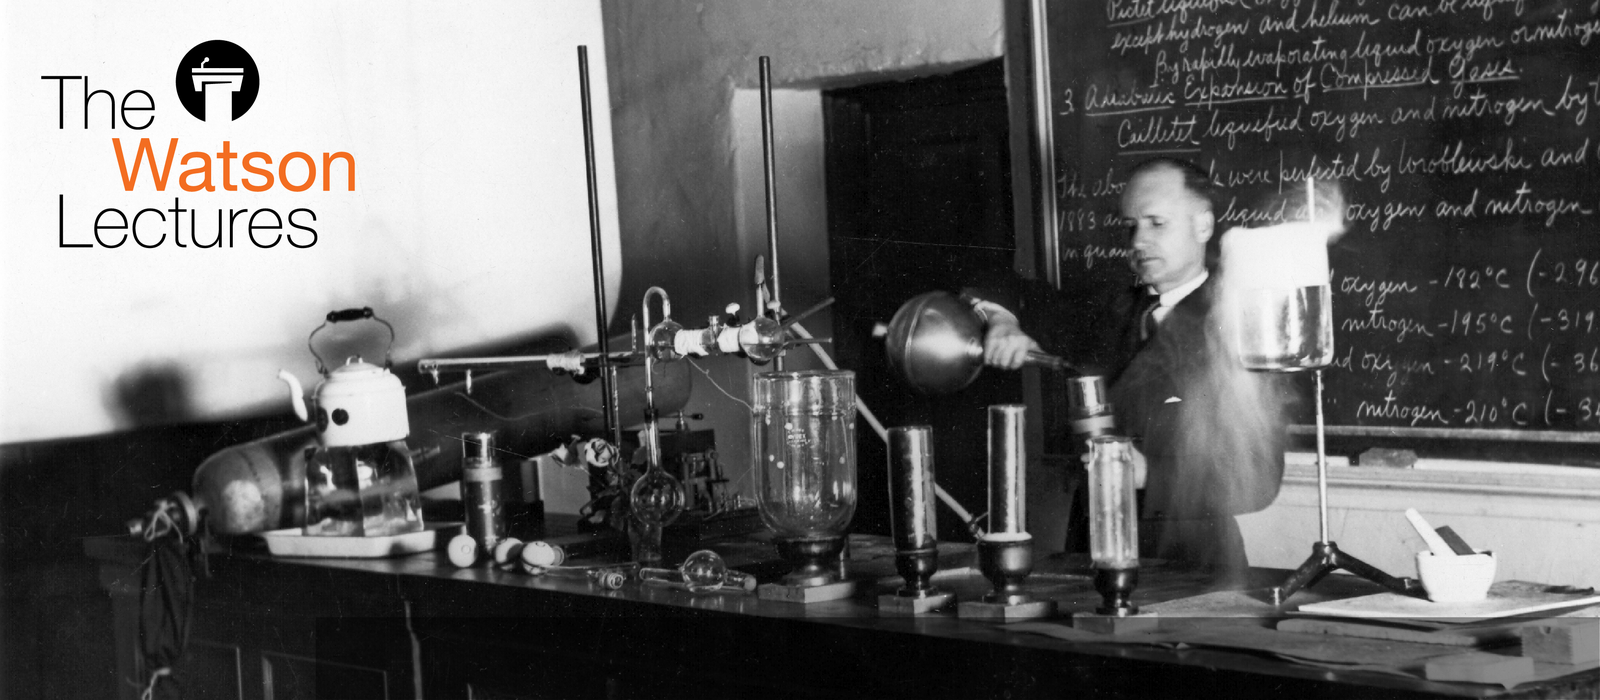 Black and white photo of the late Earnest C. Watson conducting his famous liquid air experiement in a Caltech lecture hall. The Watson Lectures logo is in the top left corner.